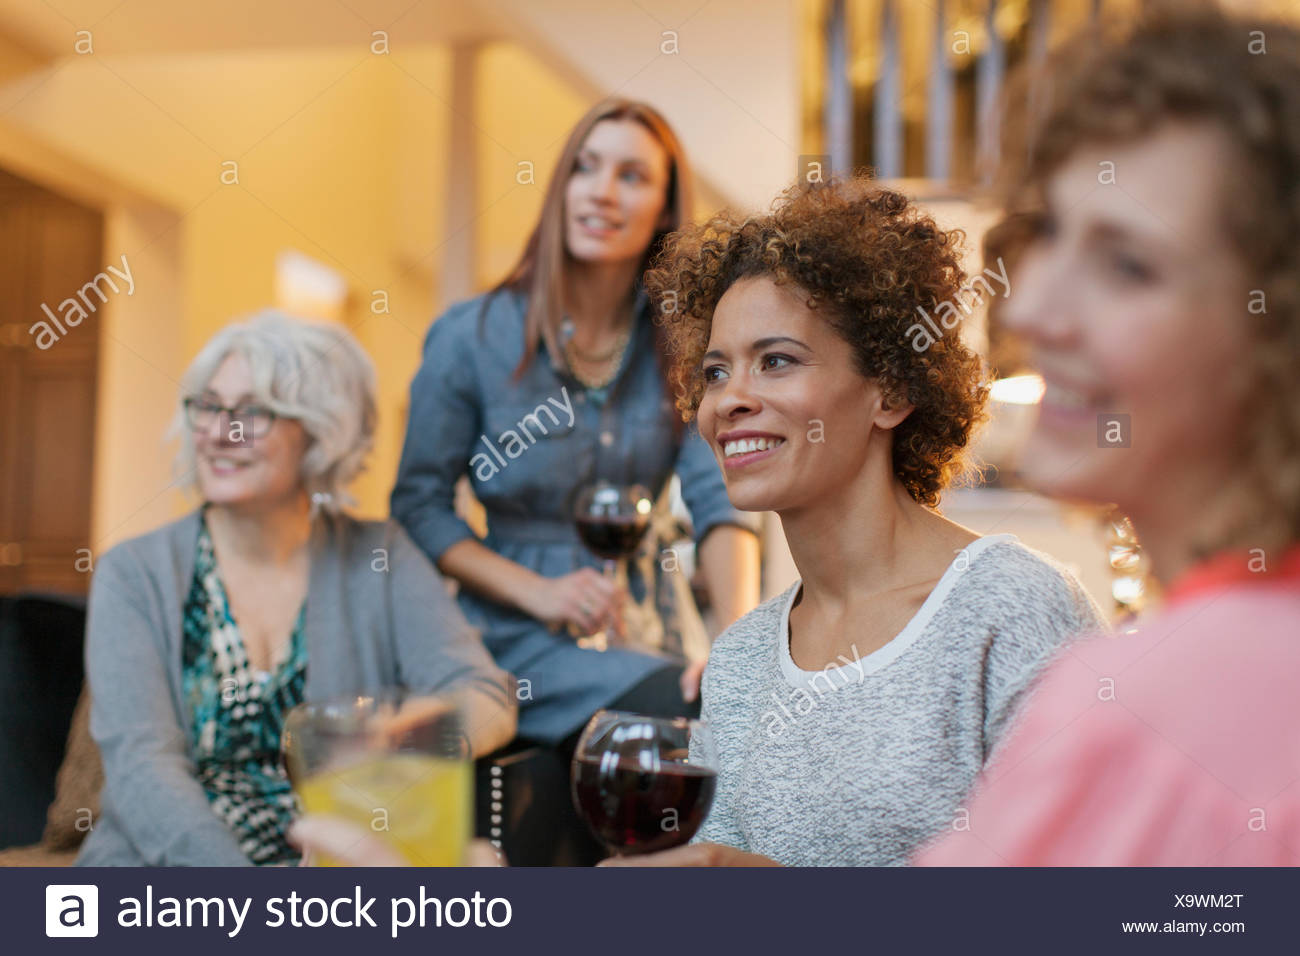 Girlfriends enjoying some wine at home. - Stock Image